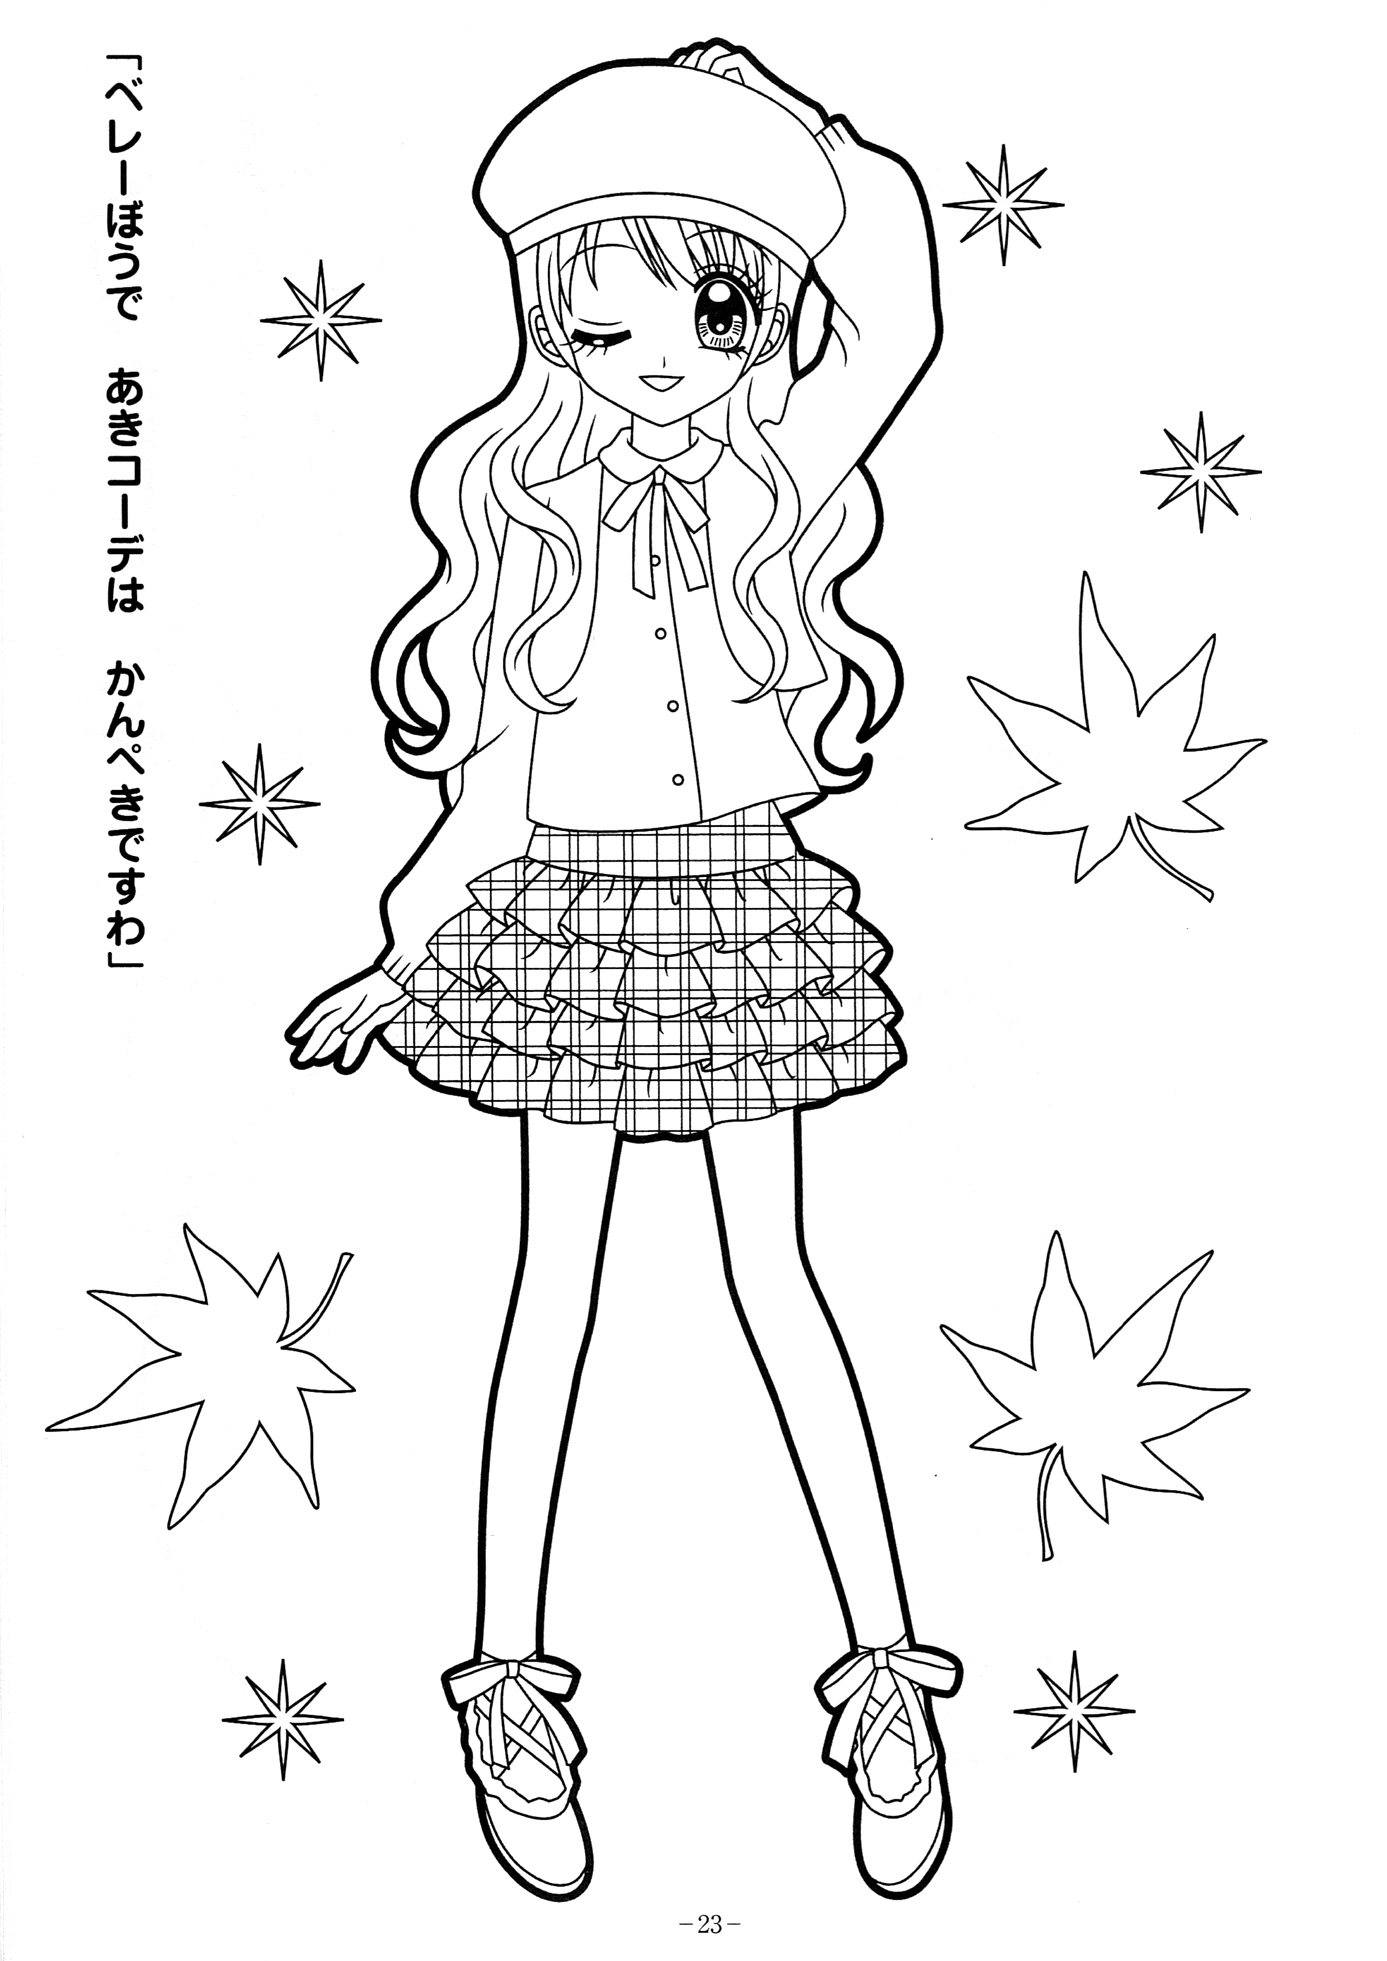 Impressive Cute Coloring Pages Girls to Print for 4690 Download Of Cute Coloring Pages for Girls Printable Kids Colouring Pages Kids Gallery